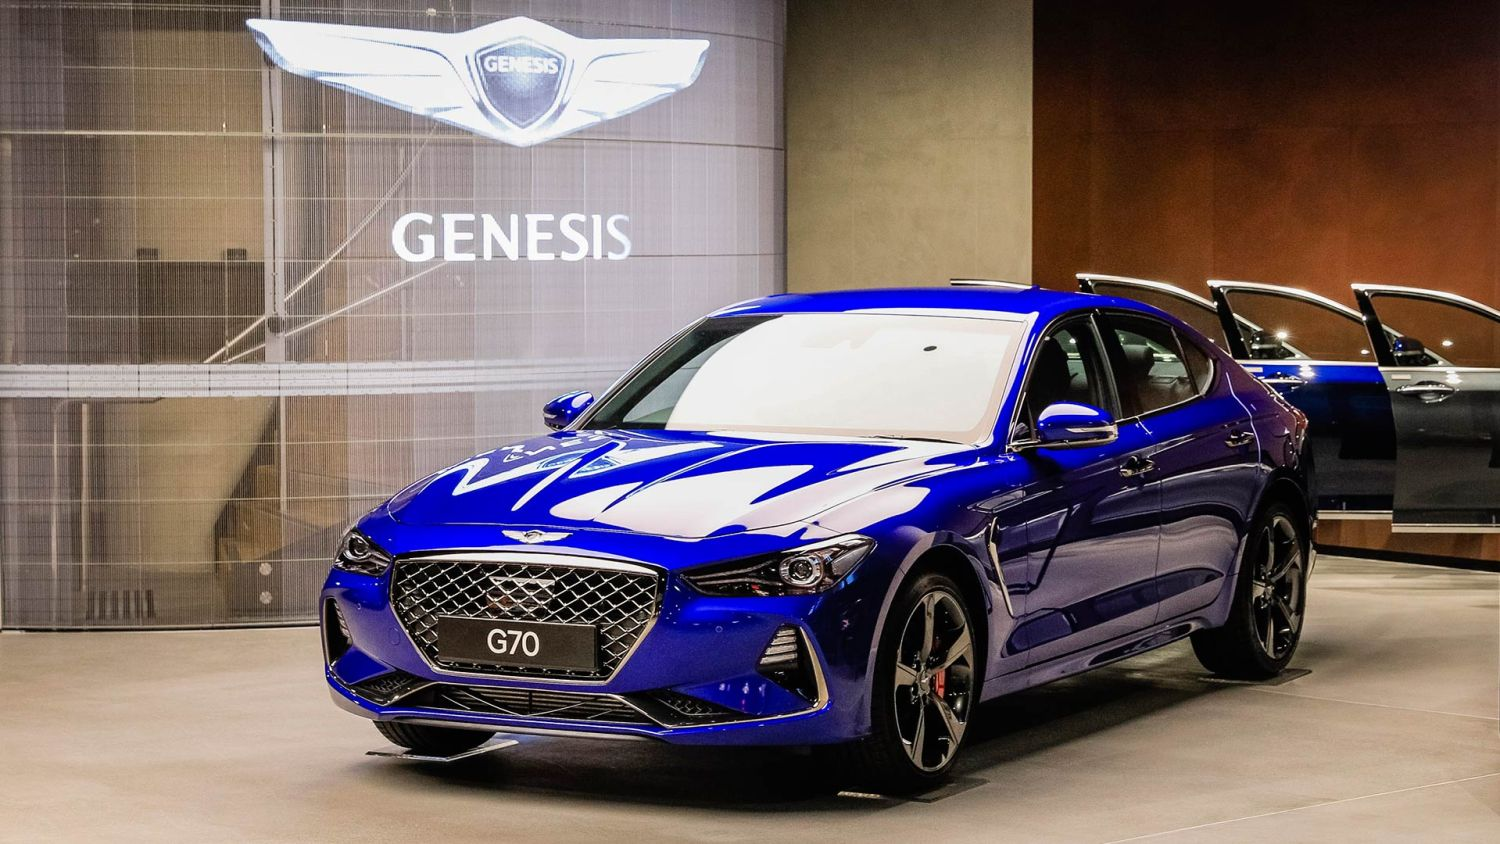 Genesis luxury brand launches in Australia